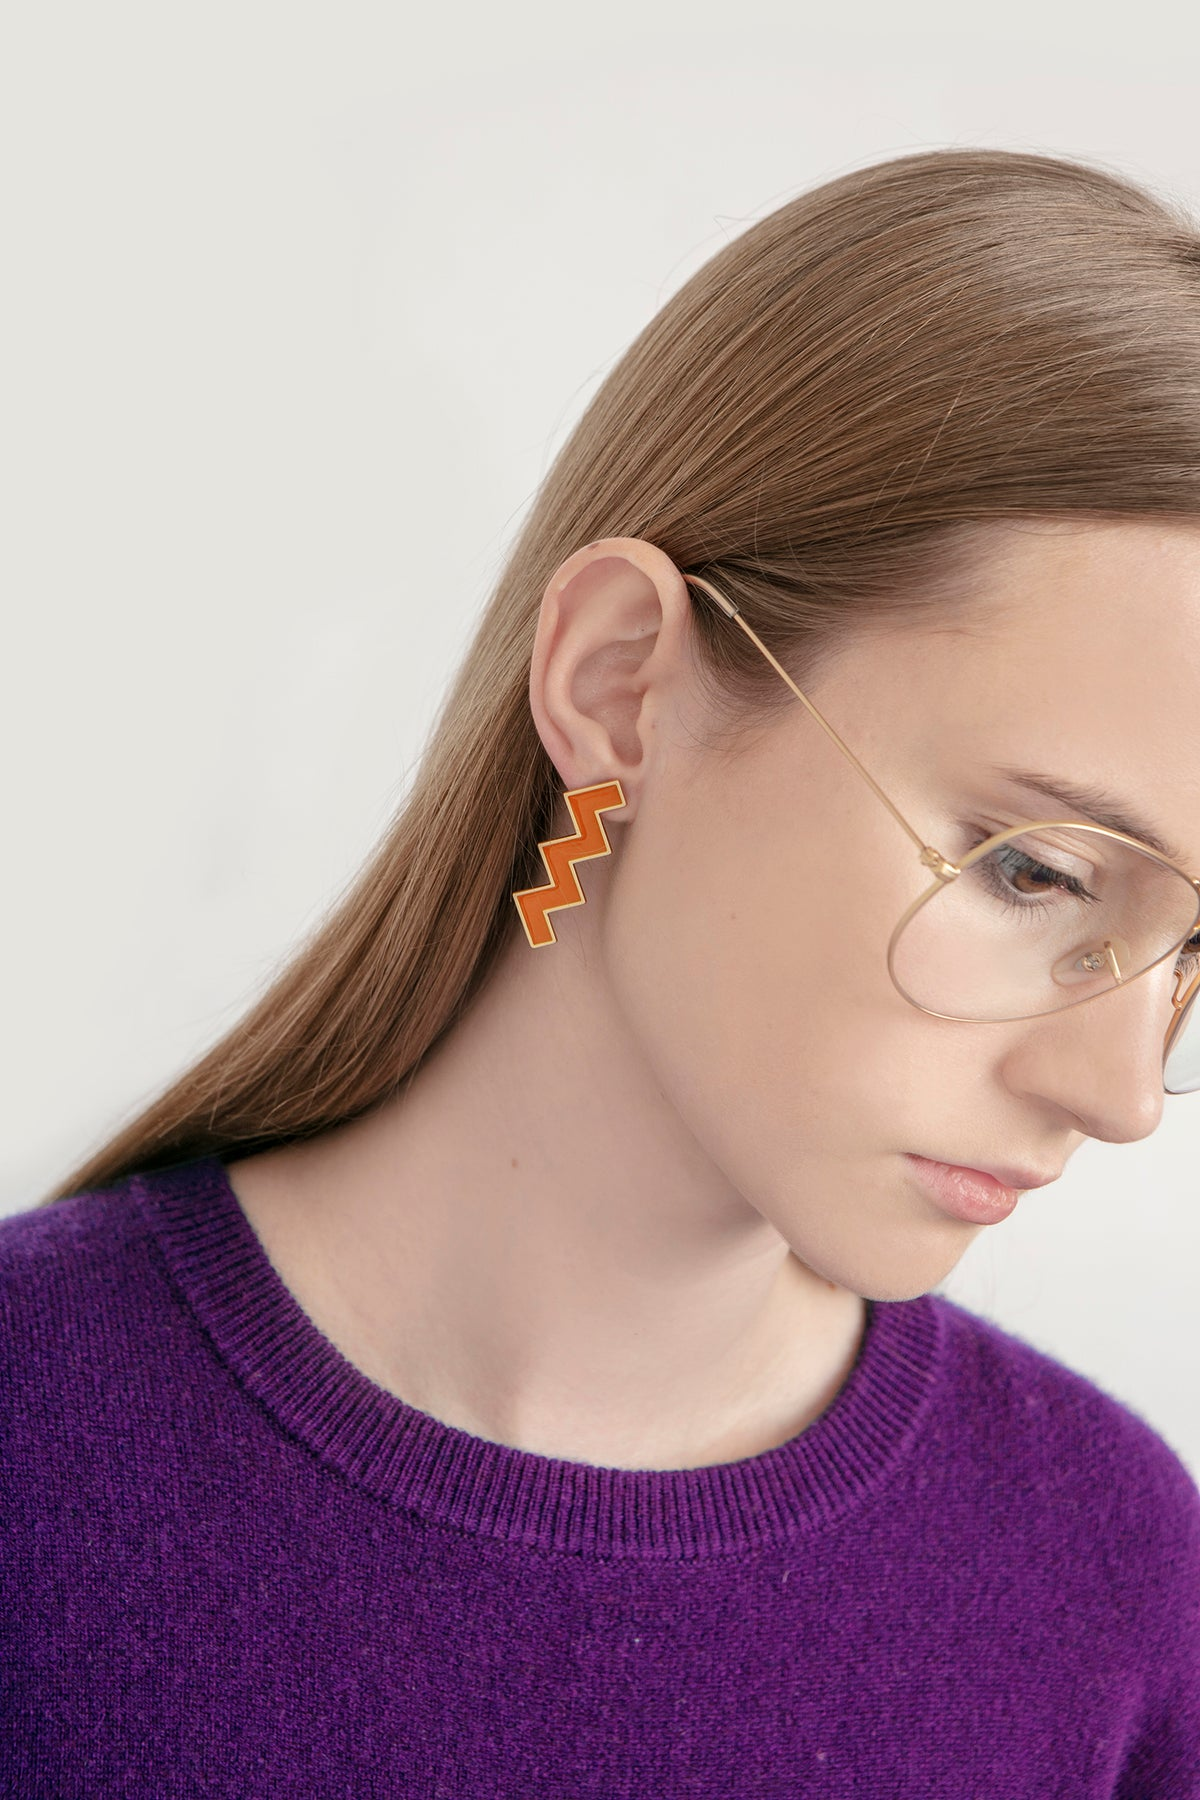 Image of Zs Earrings • Stainless steel • Mix and Match 2